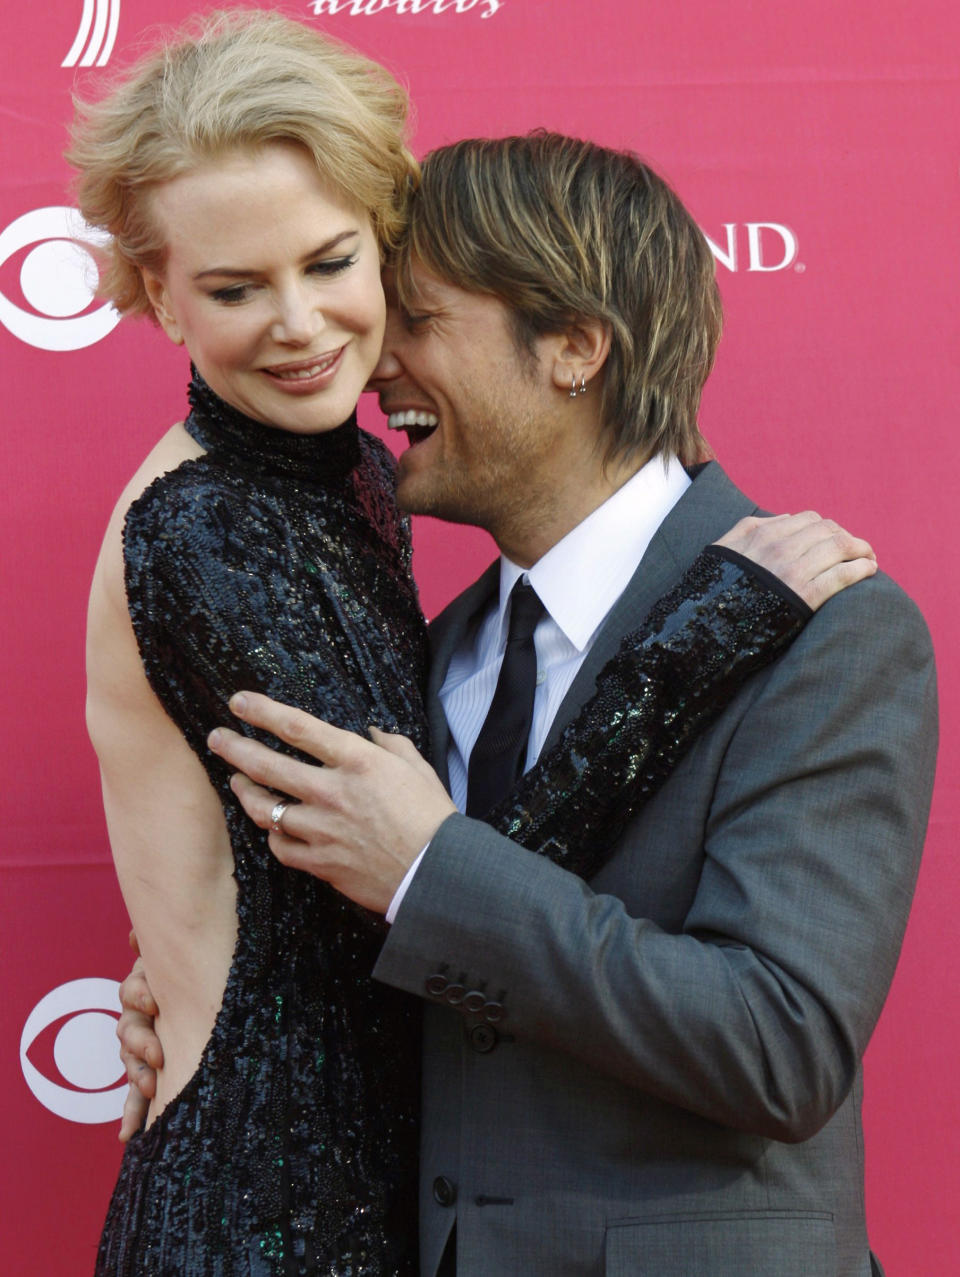 Actress Nicole Kidman and her husband, singer Keith Urban arrive at the 44th Annual Academy of Country Music Awards in Las Vegas April 5, 2009.     REUTERS/Steve Marcus (UNITED STATES ENTERTAINMENT IMAGE OF THE DAY TOP PICTURE)